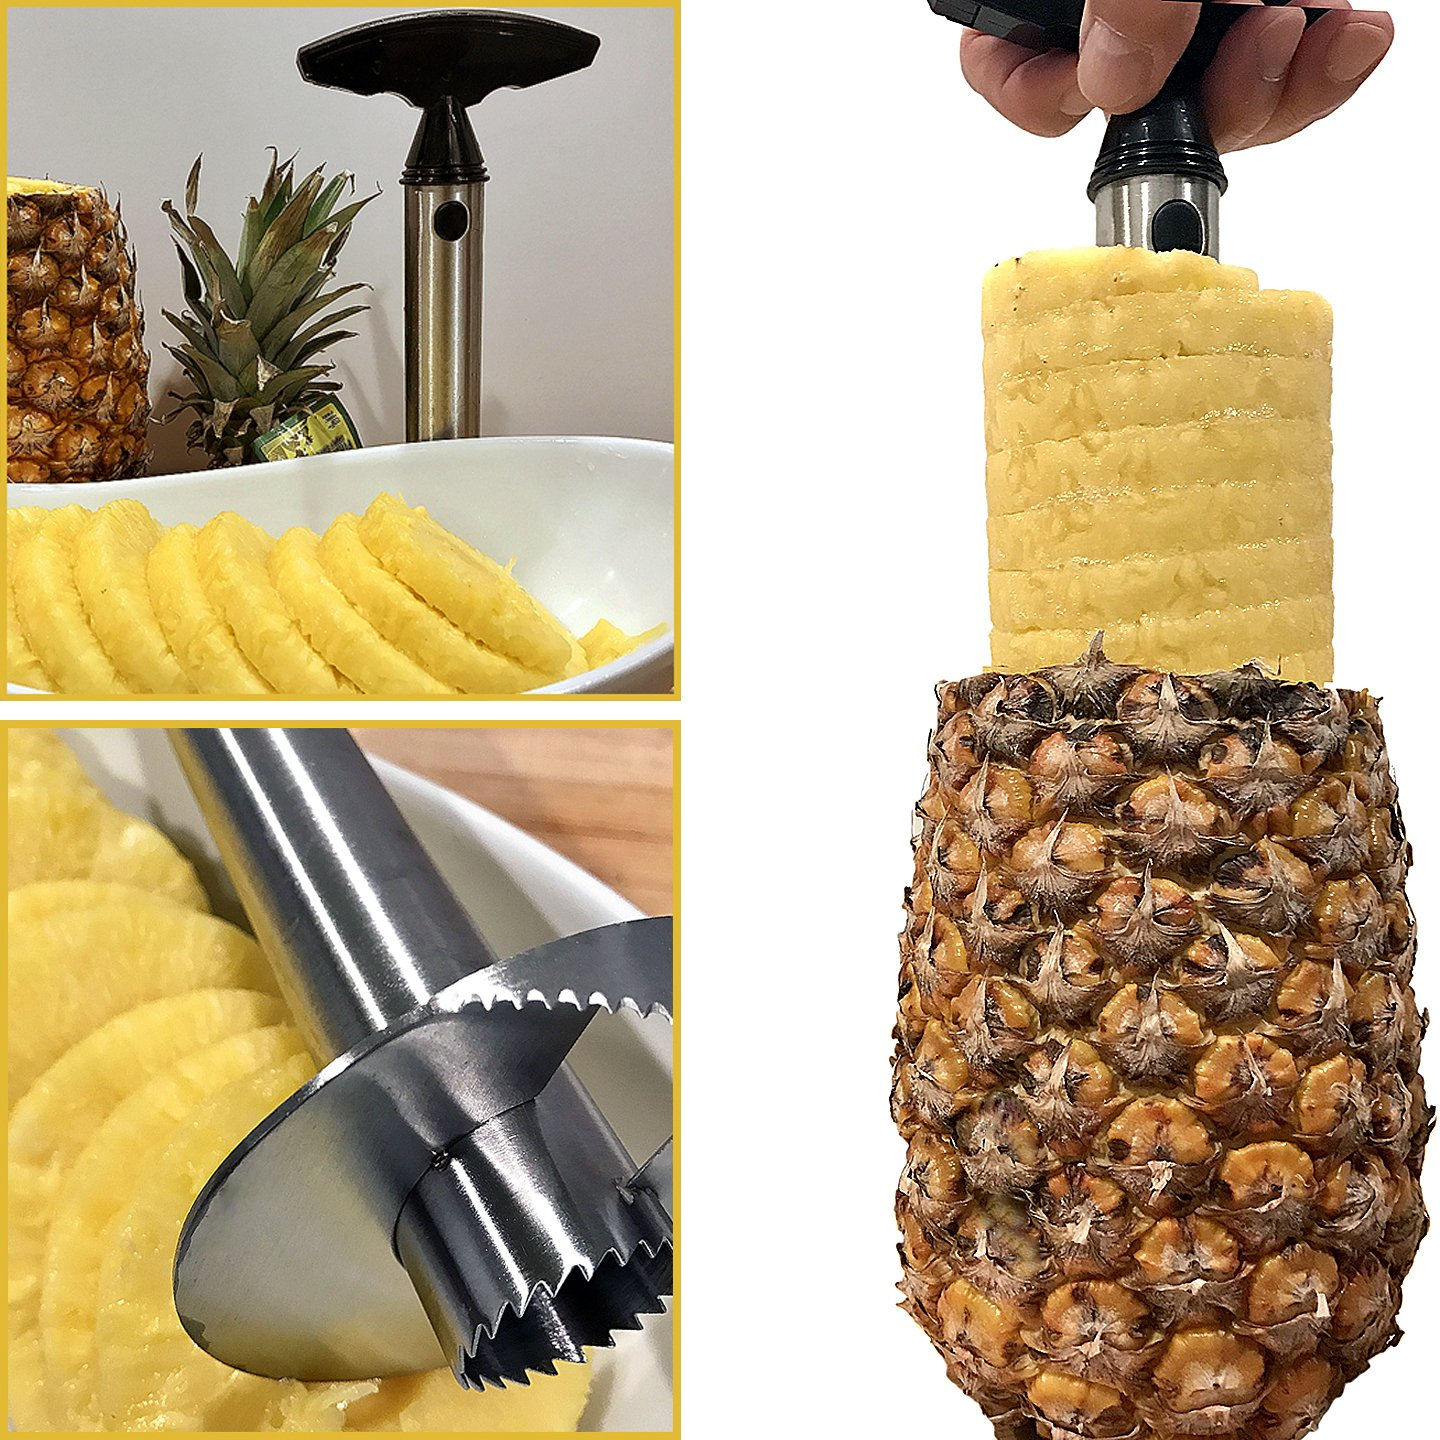 Adorox Stainless Steel Pineapple Fruit Core Slicer Cutter Kitchen Tool (Stainless Steel (1 Slicer)) ADX209